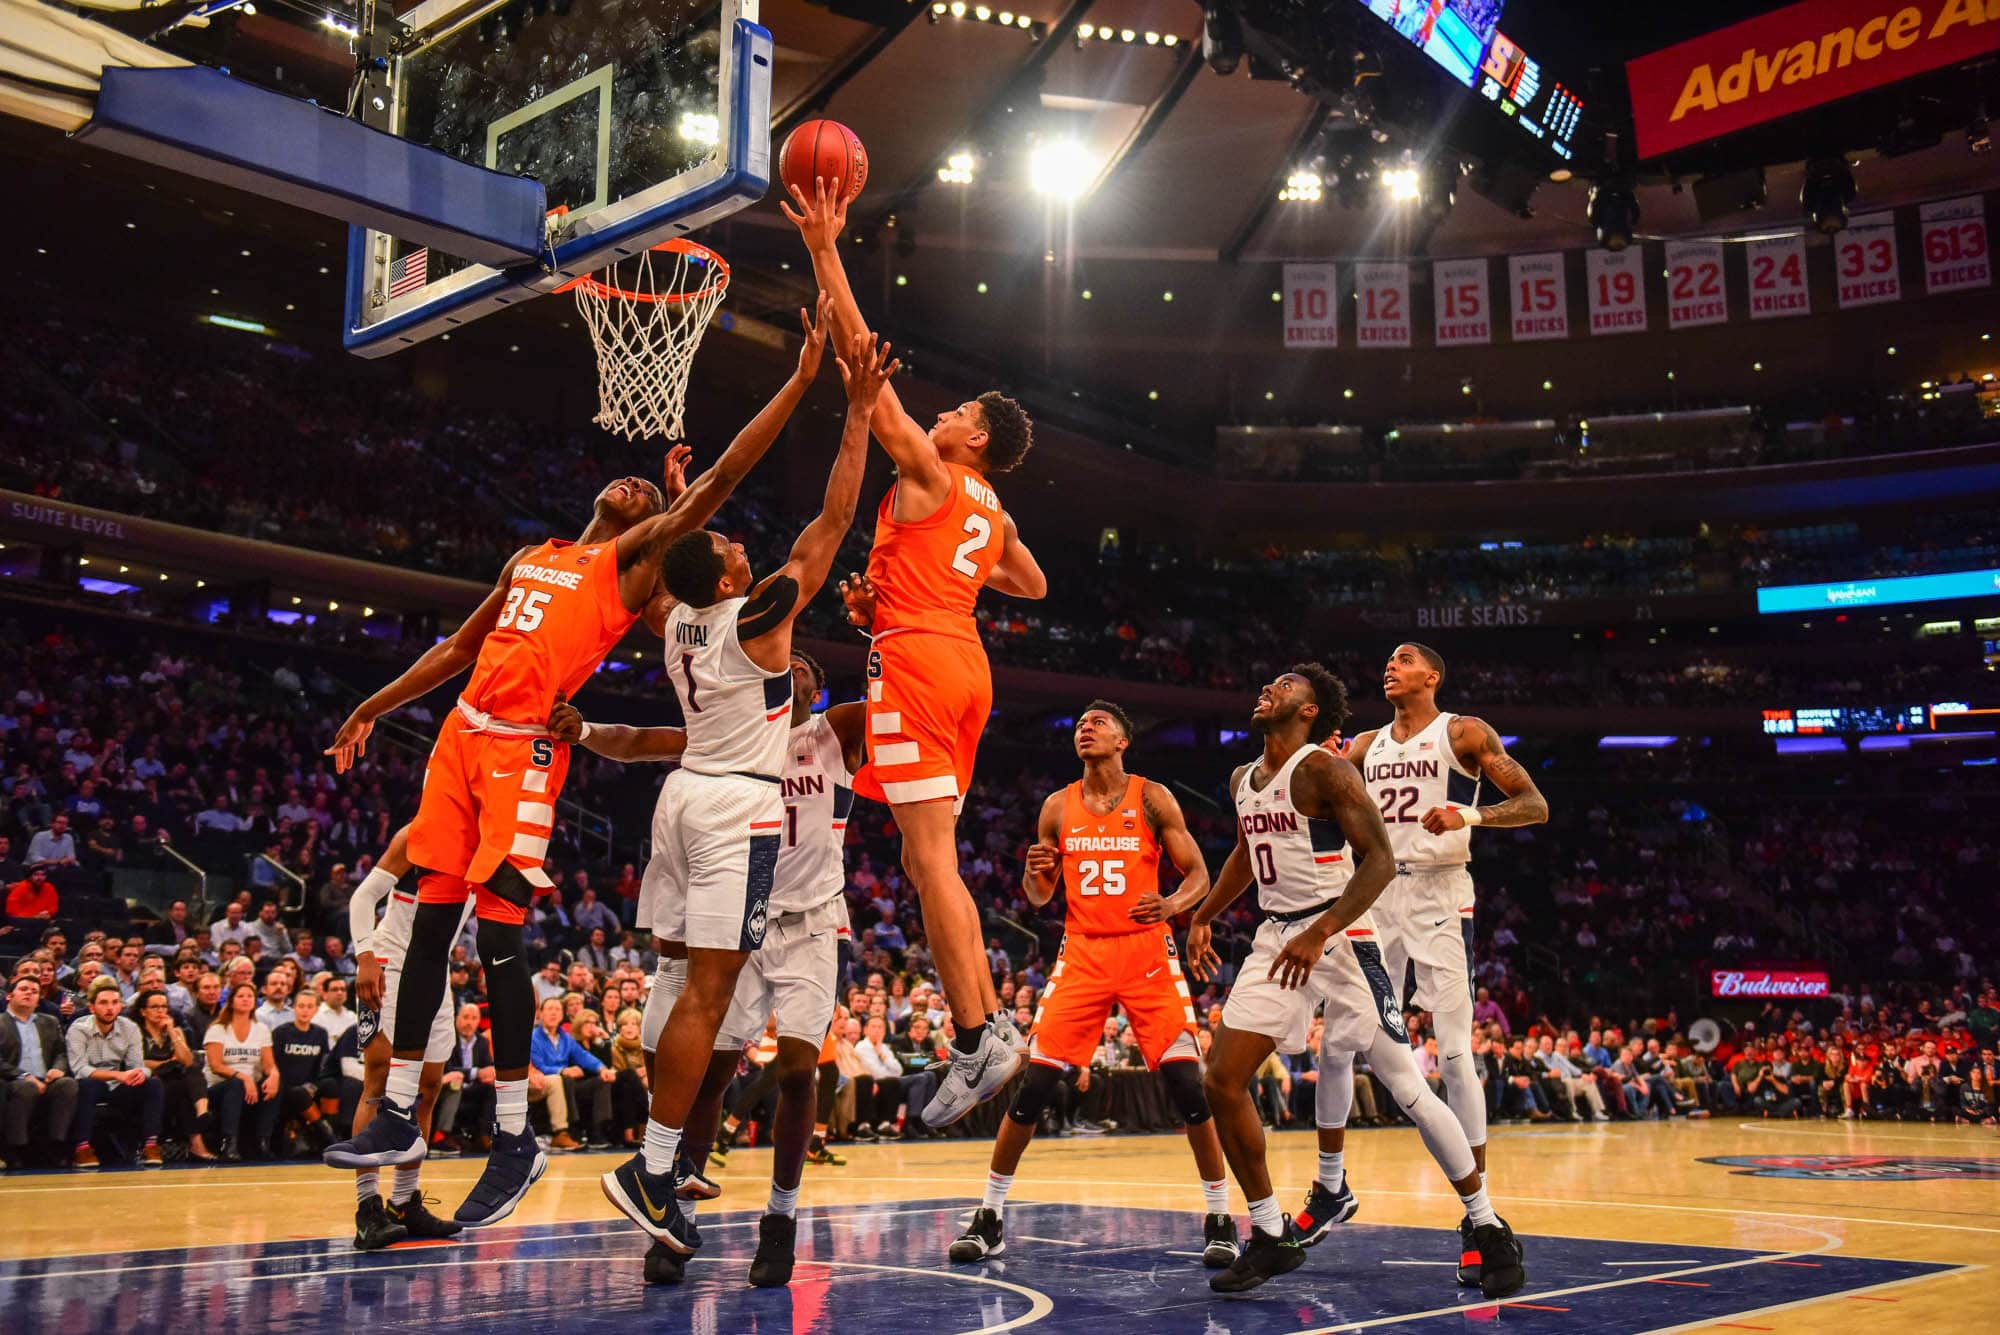 Syracuse vs. Connecticut on Dec. 5, 2017 at Madison Square Garden, New York City